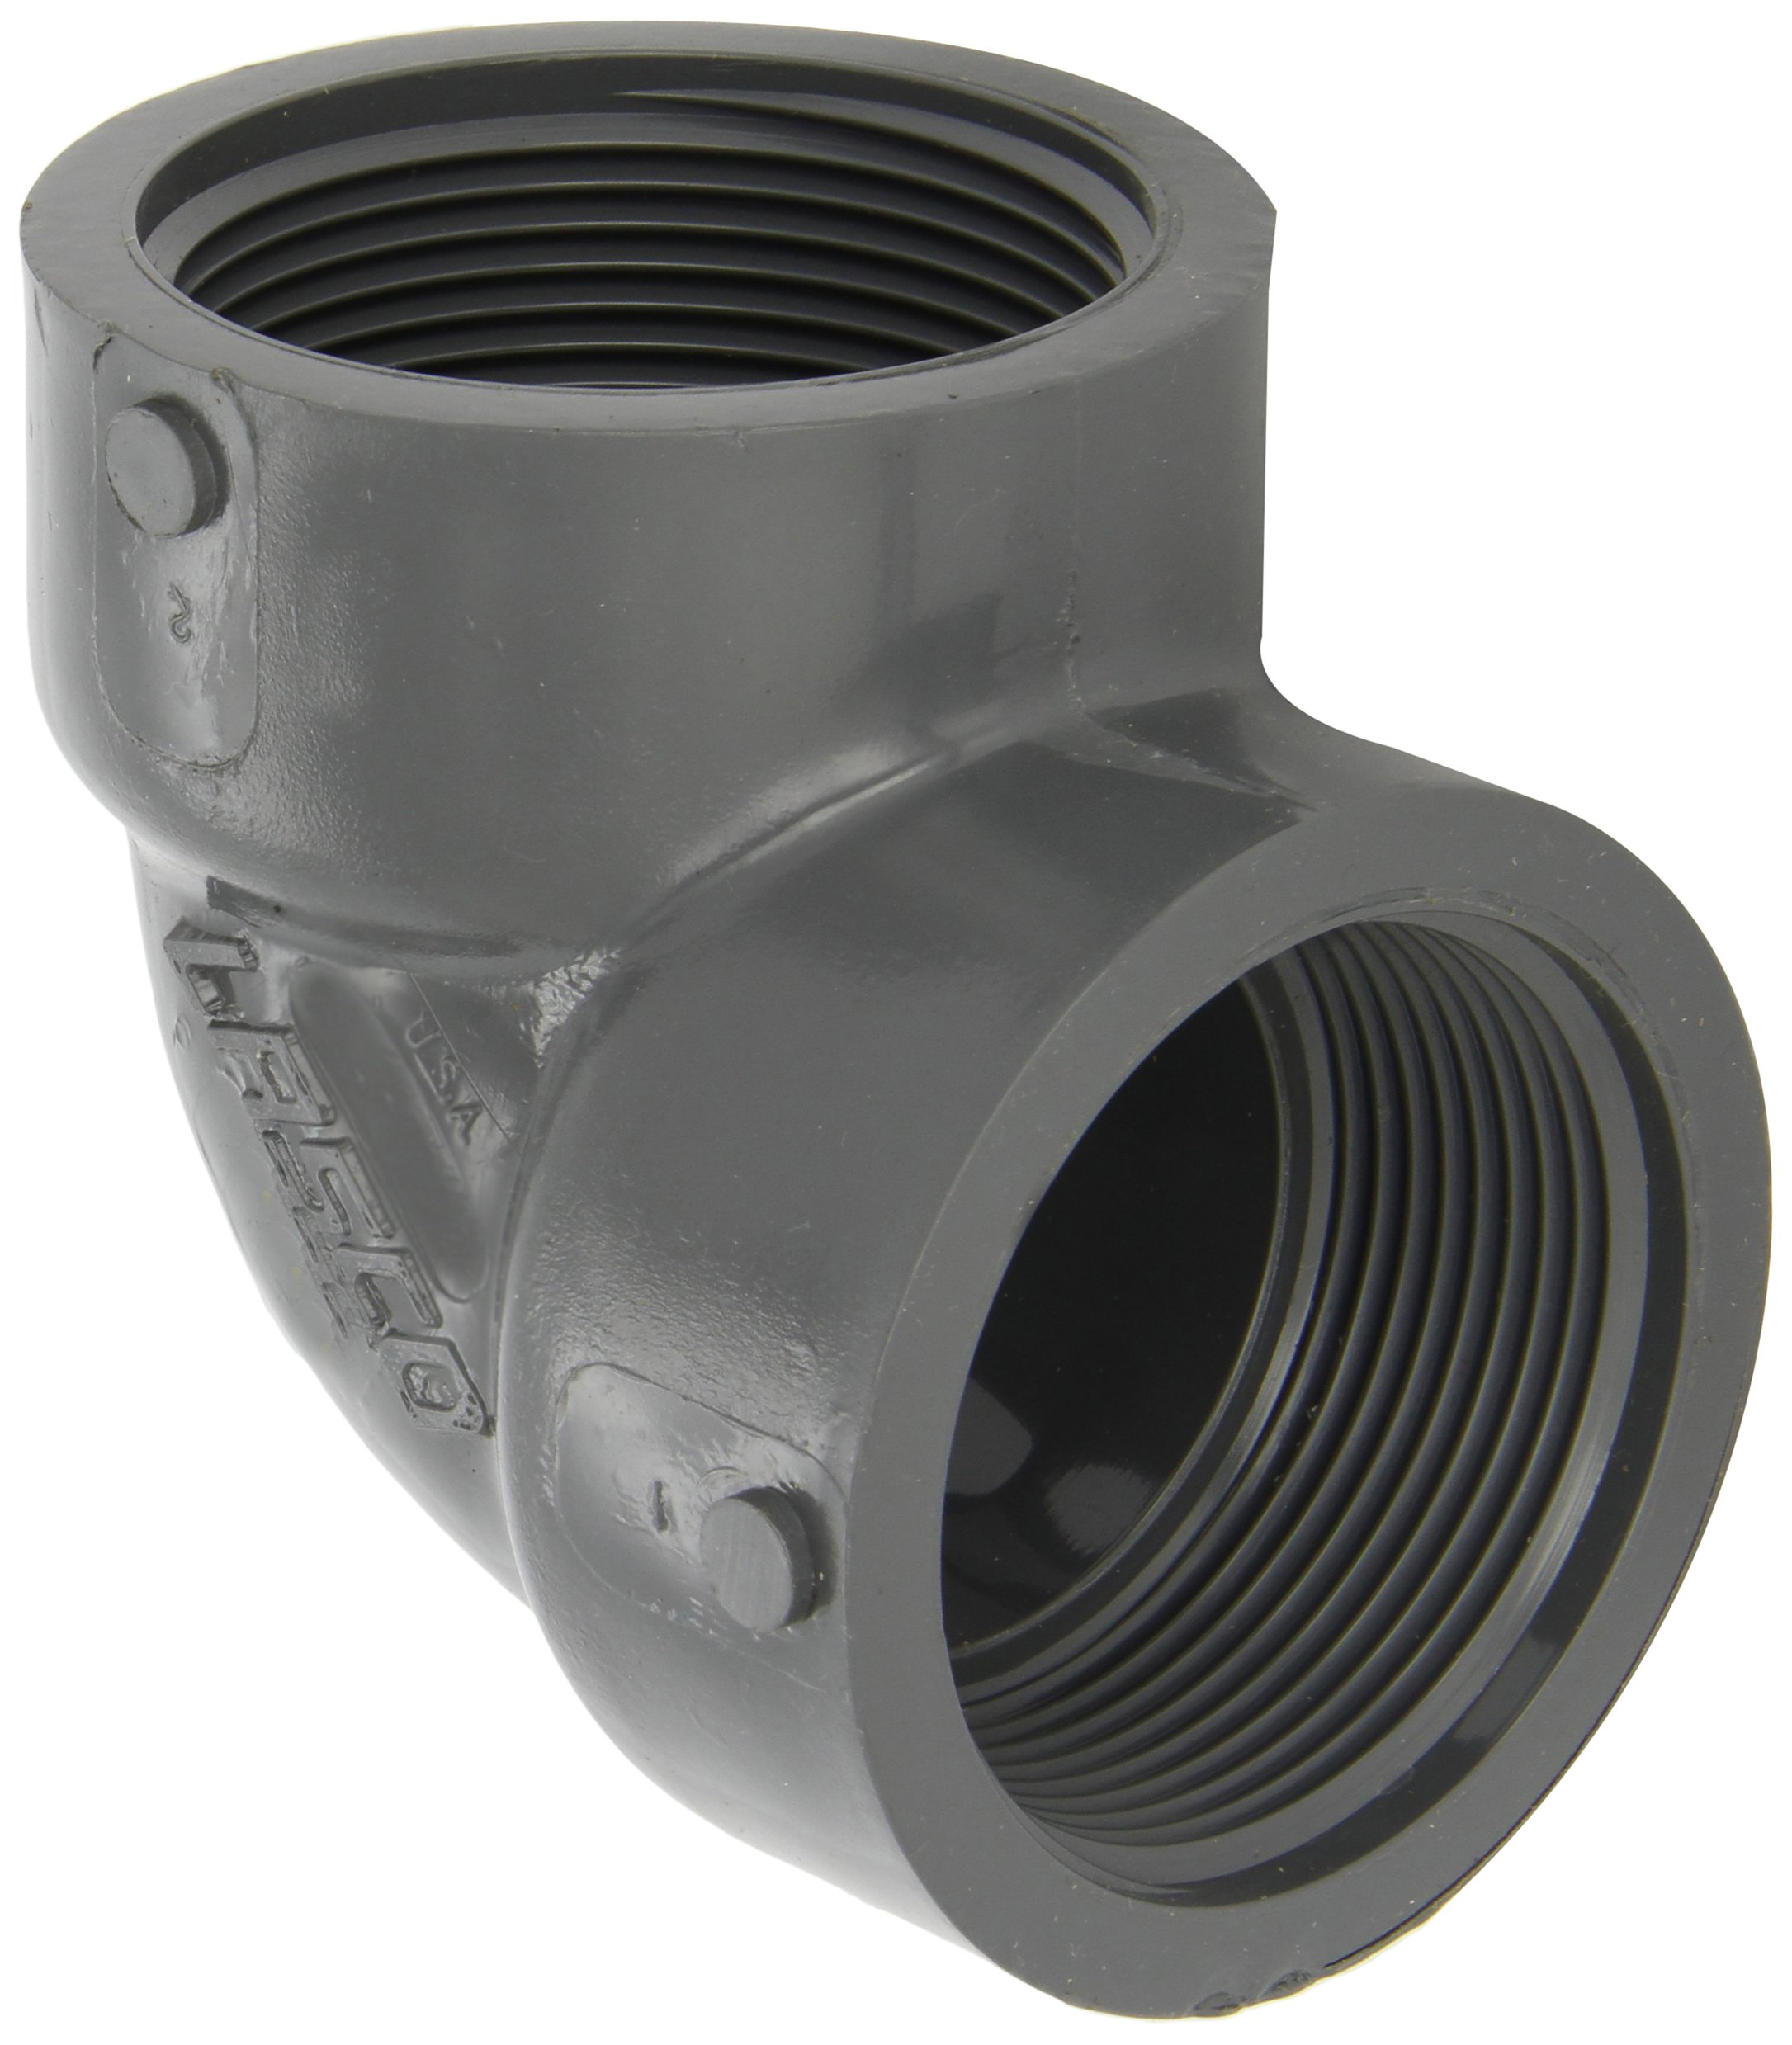 GF Piping Systems PVC Pipe Fitting 2 NPT Female Coupling Schedule 80 Gray